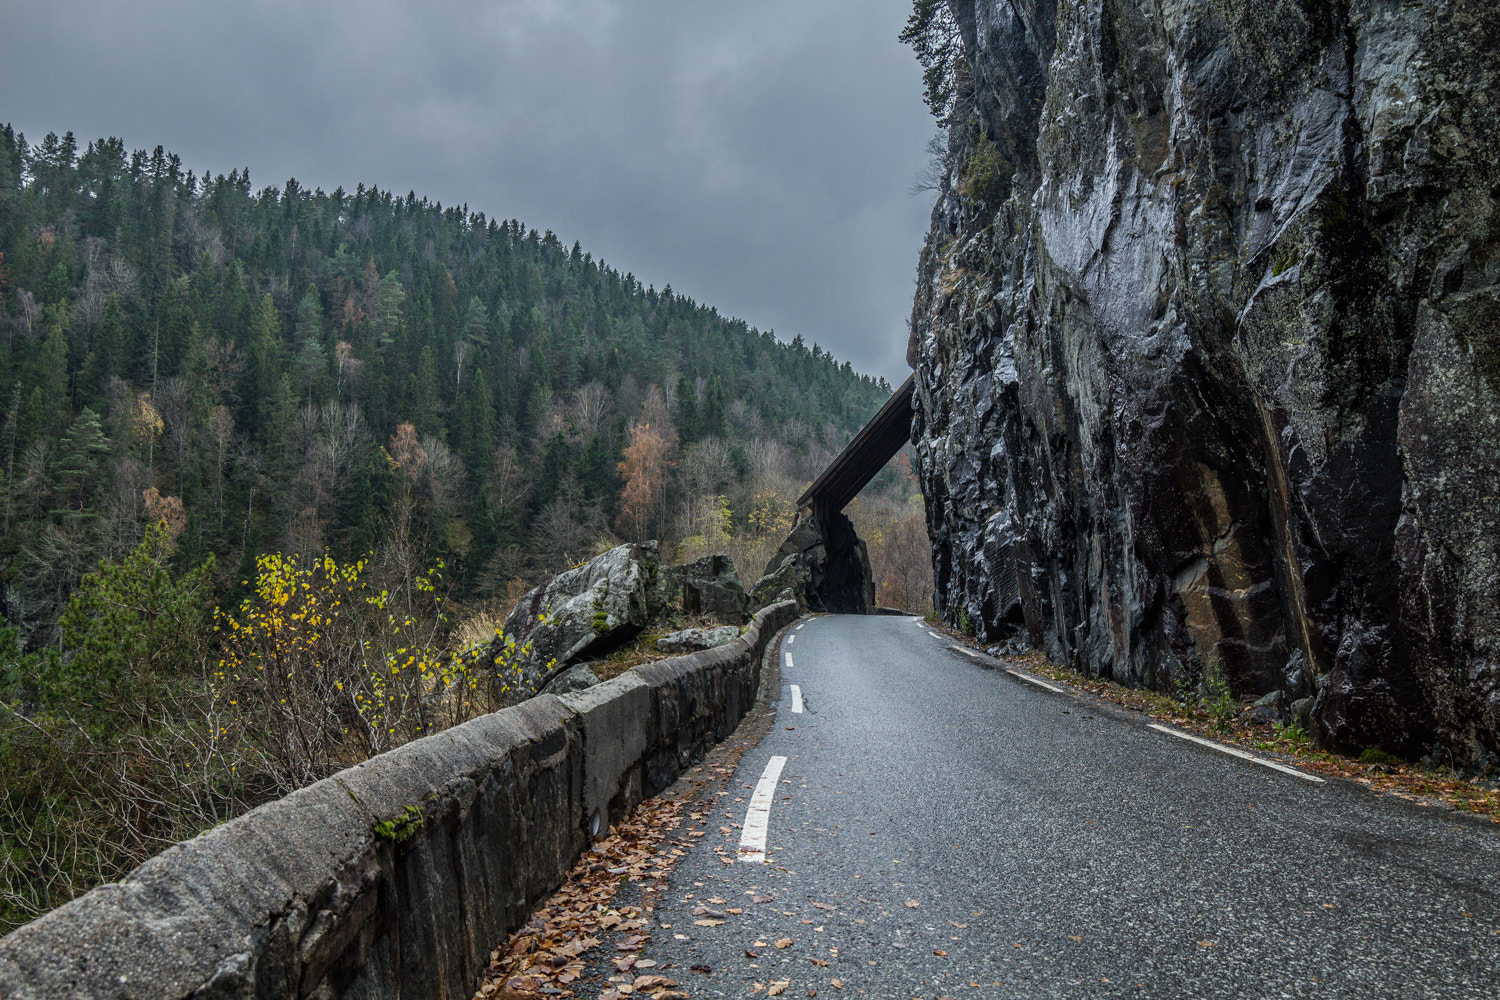 Photograph The Roads of Norway by Agust Ingvarsson on 500px